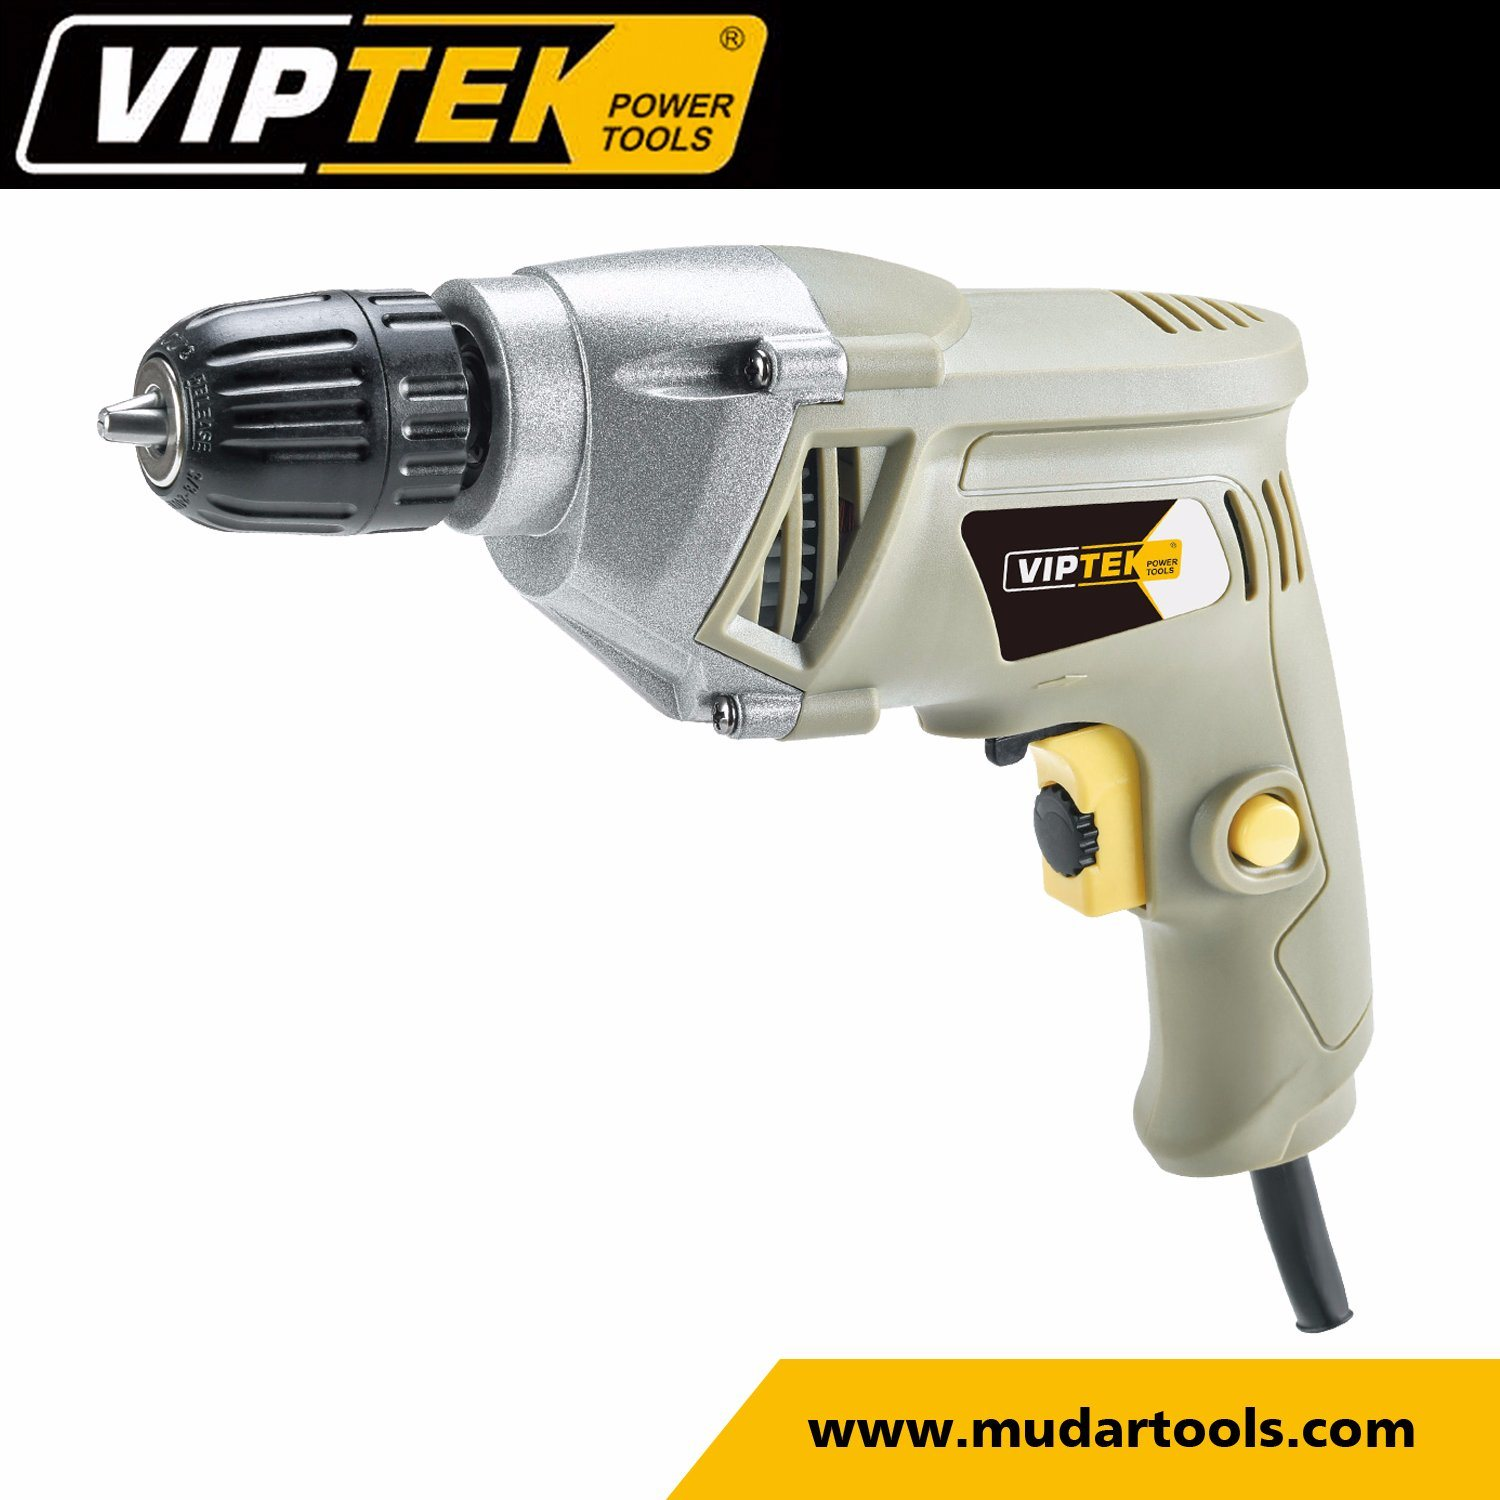 650w power tools 10mm impact drill manufacturers china electric drill power tools drill. Black Bedroom Furniture Sets. Home Design Ideas